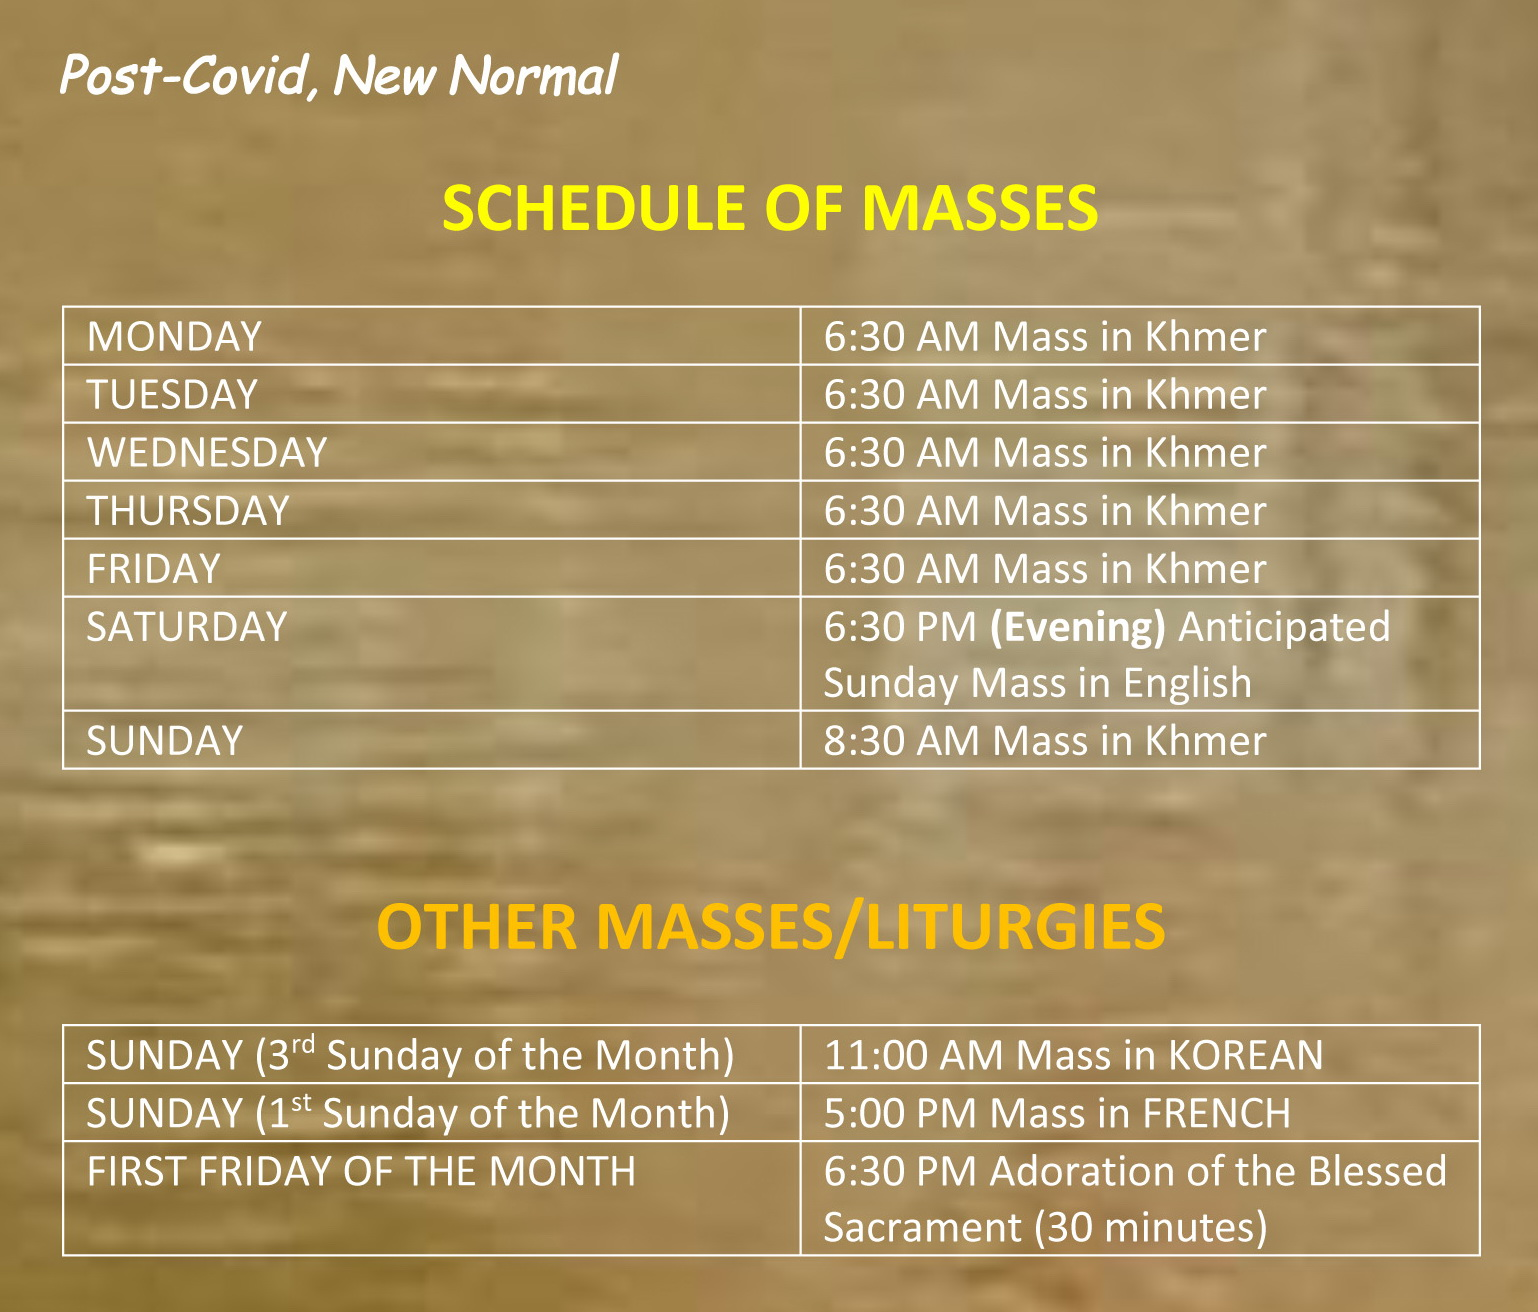 Post-Covid Schedule of Masses